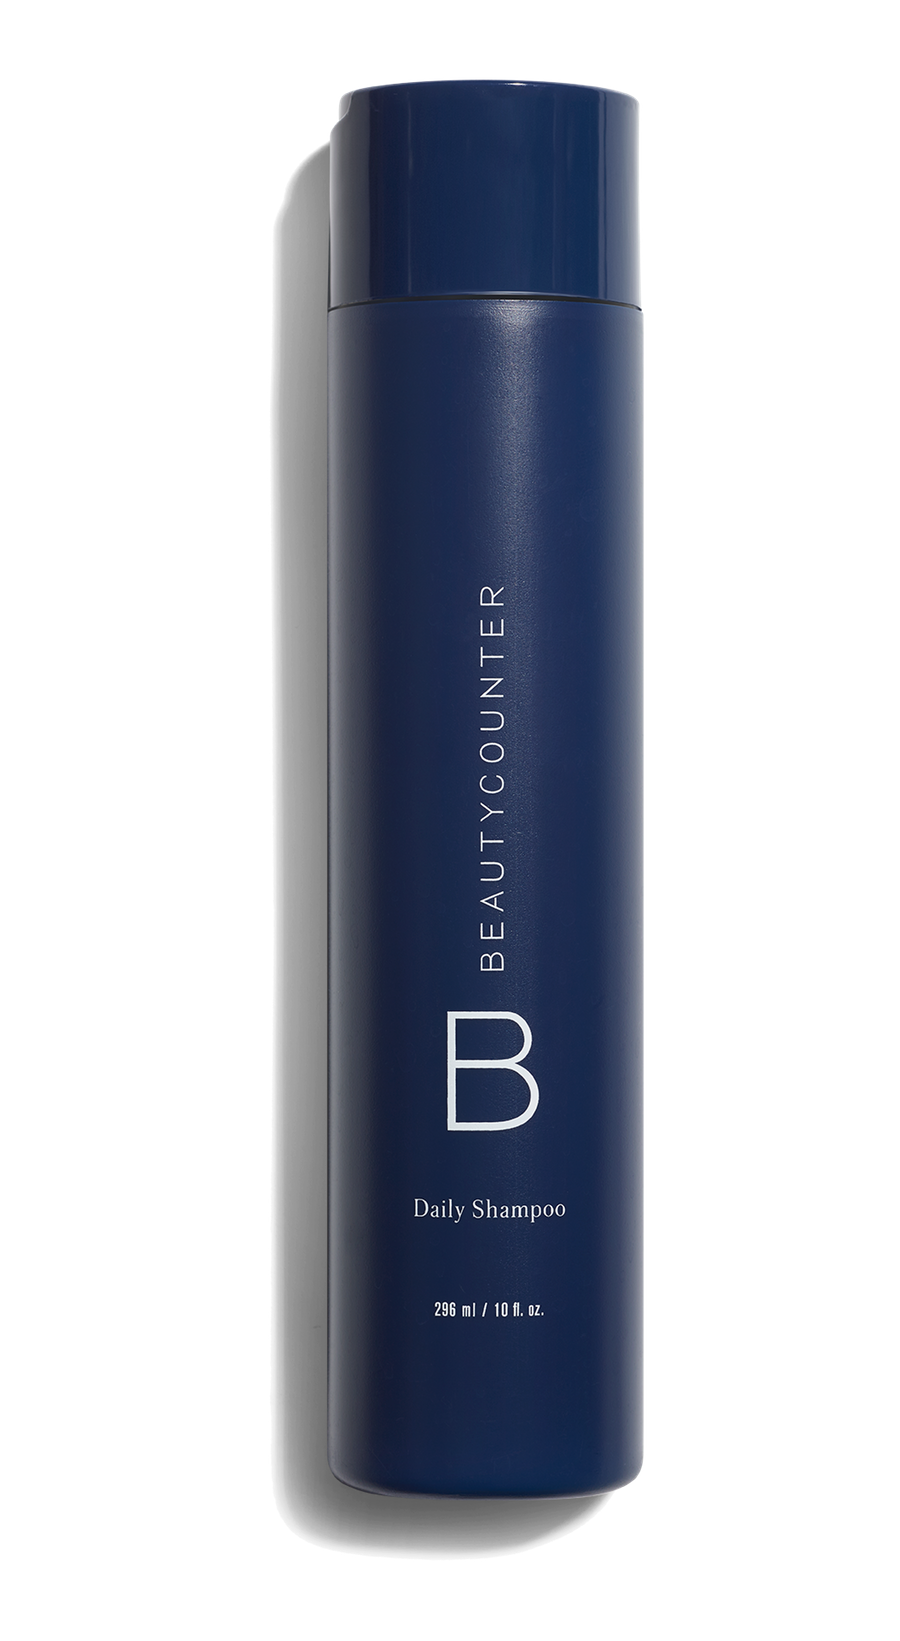 4. Daily Shampoo - My hair is so SLEEK and smooth after this shampoo I love it. Click the button below to be taken to the product page - the reviews are amazing!